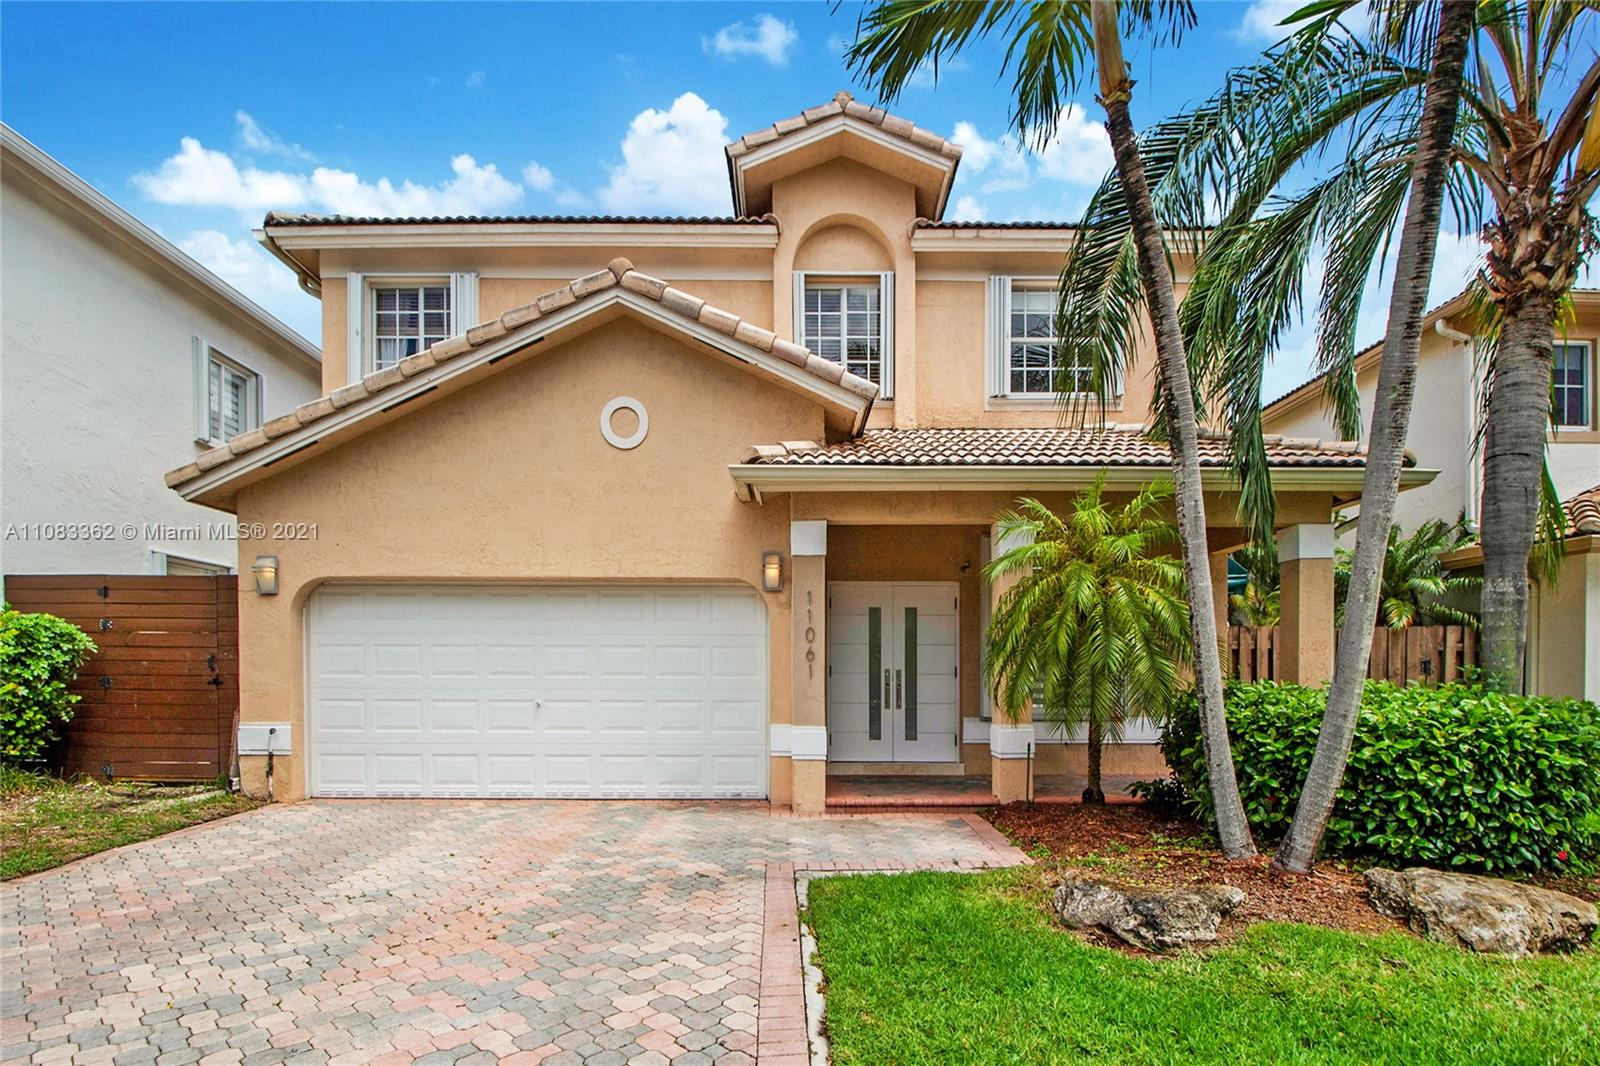 Doral Isles - 11061 NW 72nd Ter, Doral, FL 33178